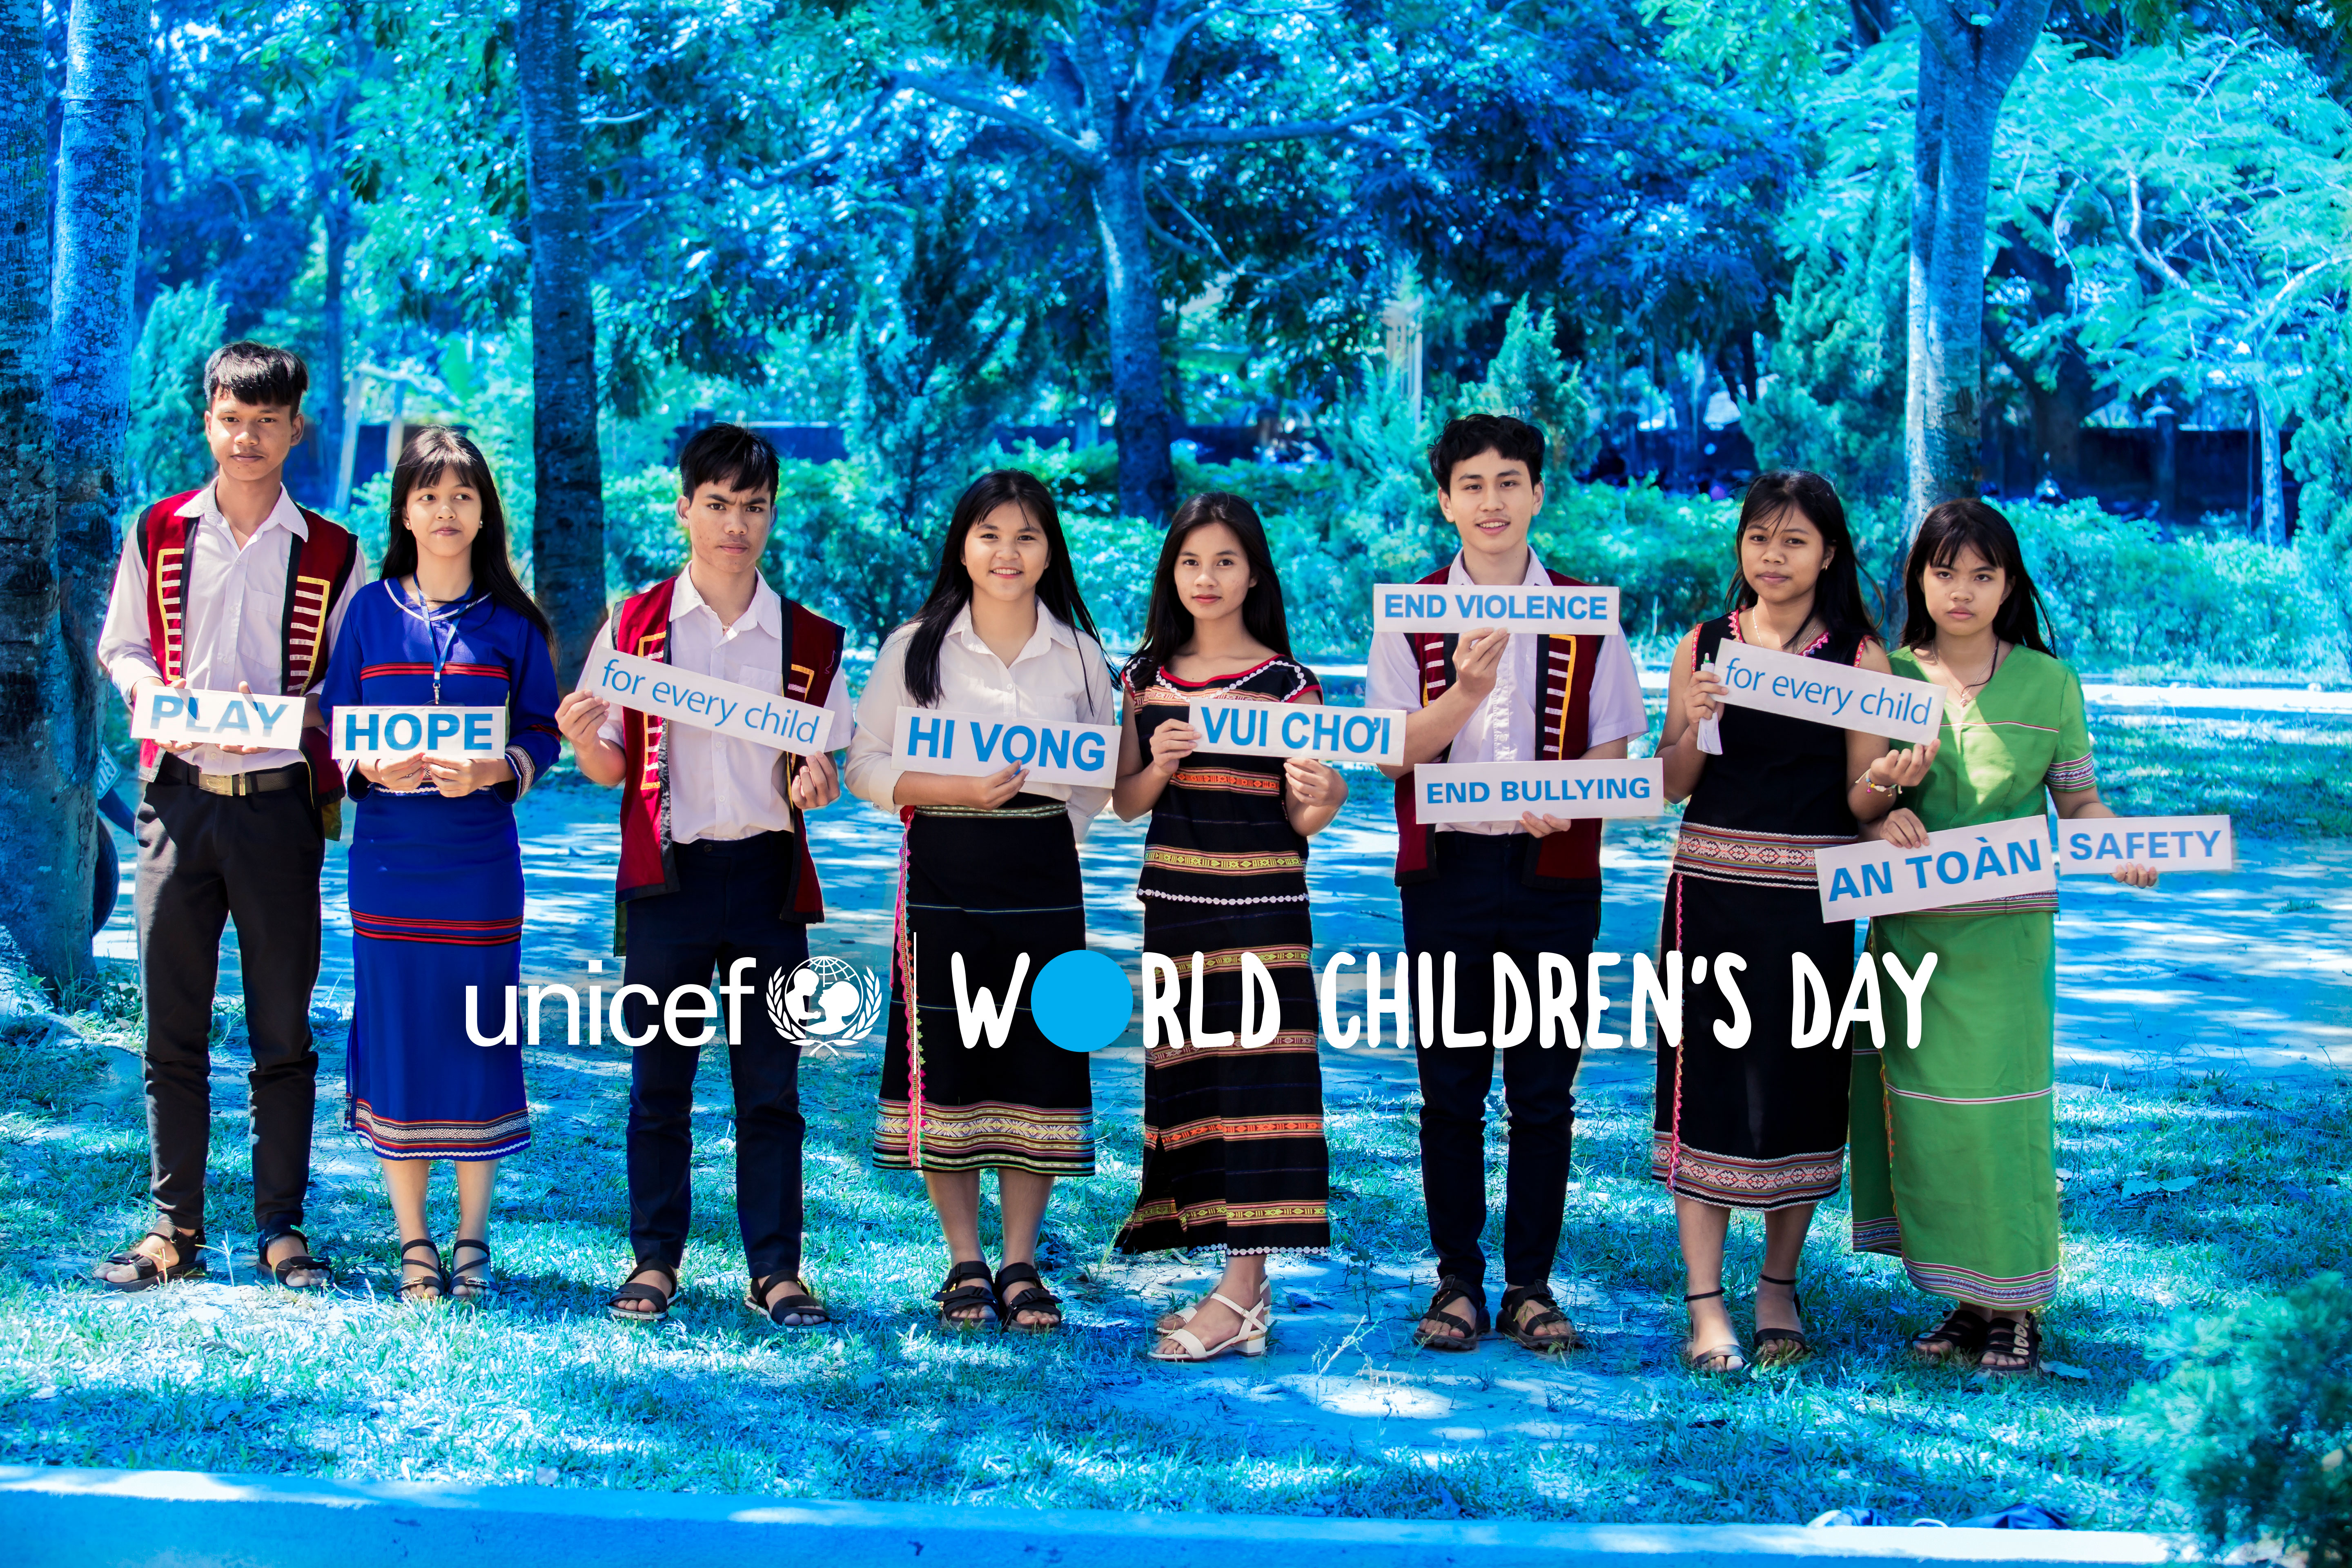 Sign the petition on world children's day 2018